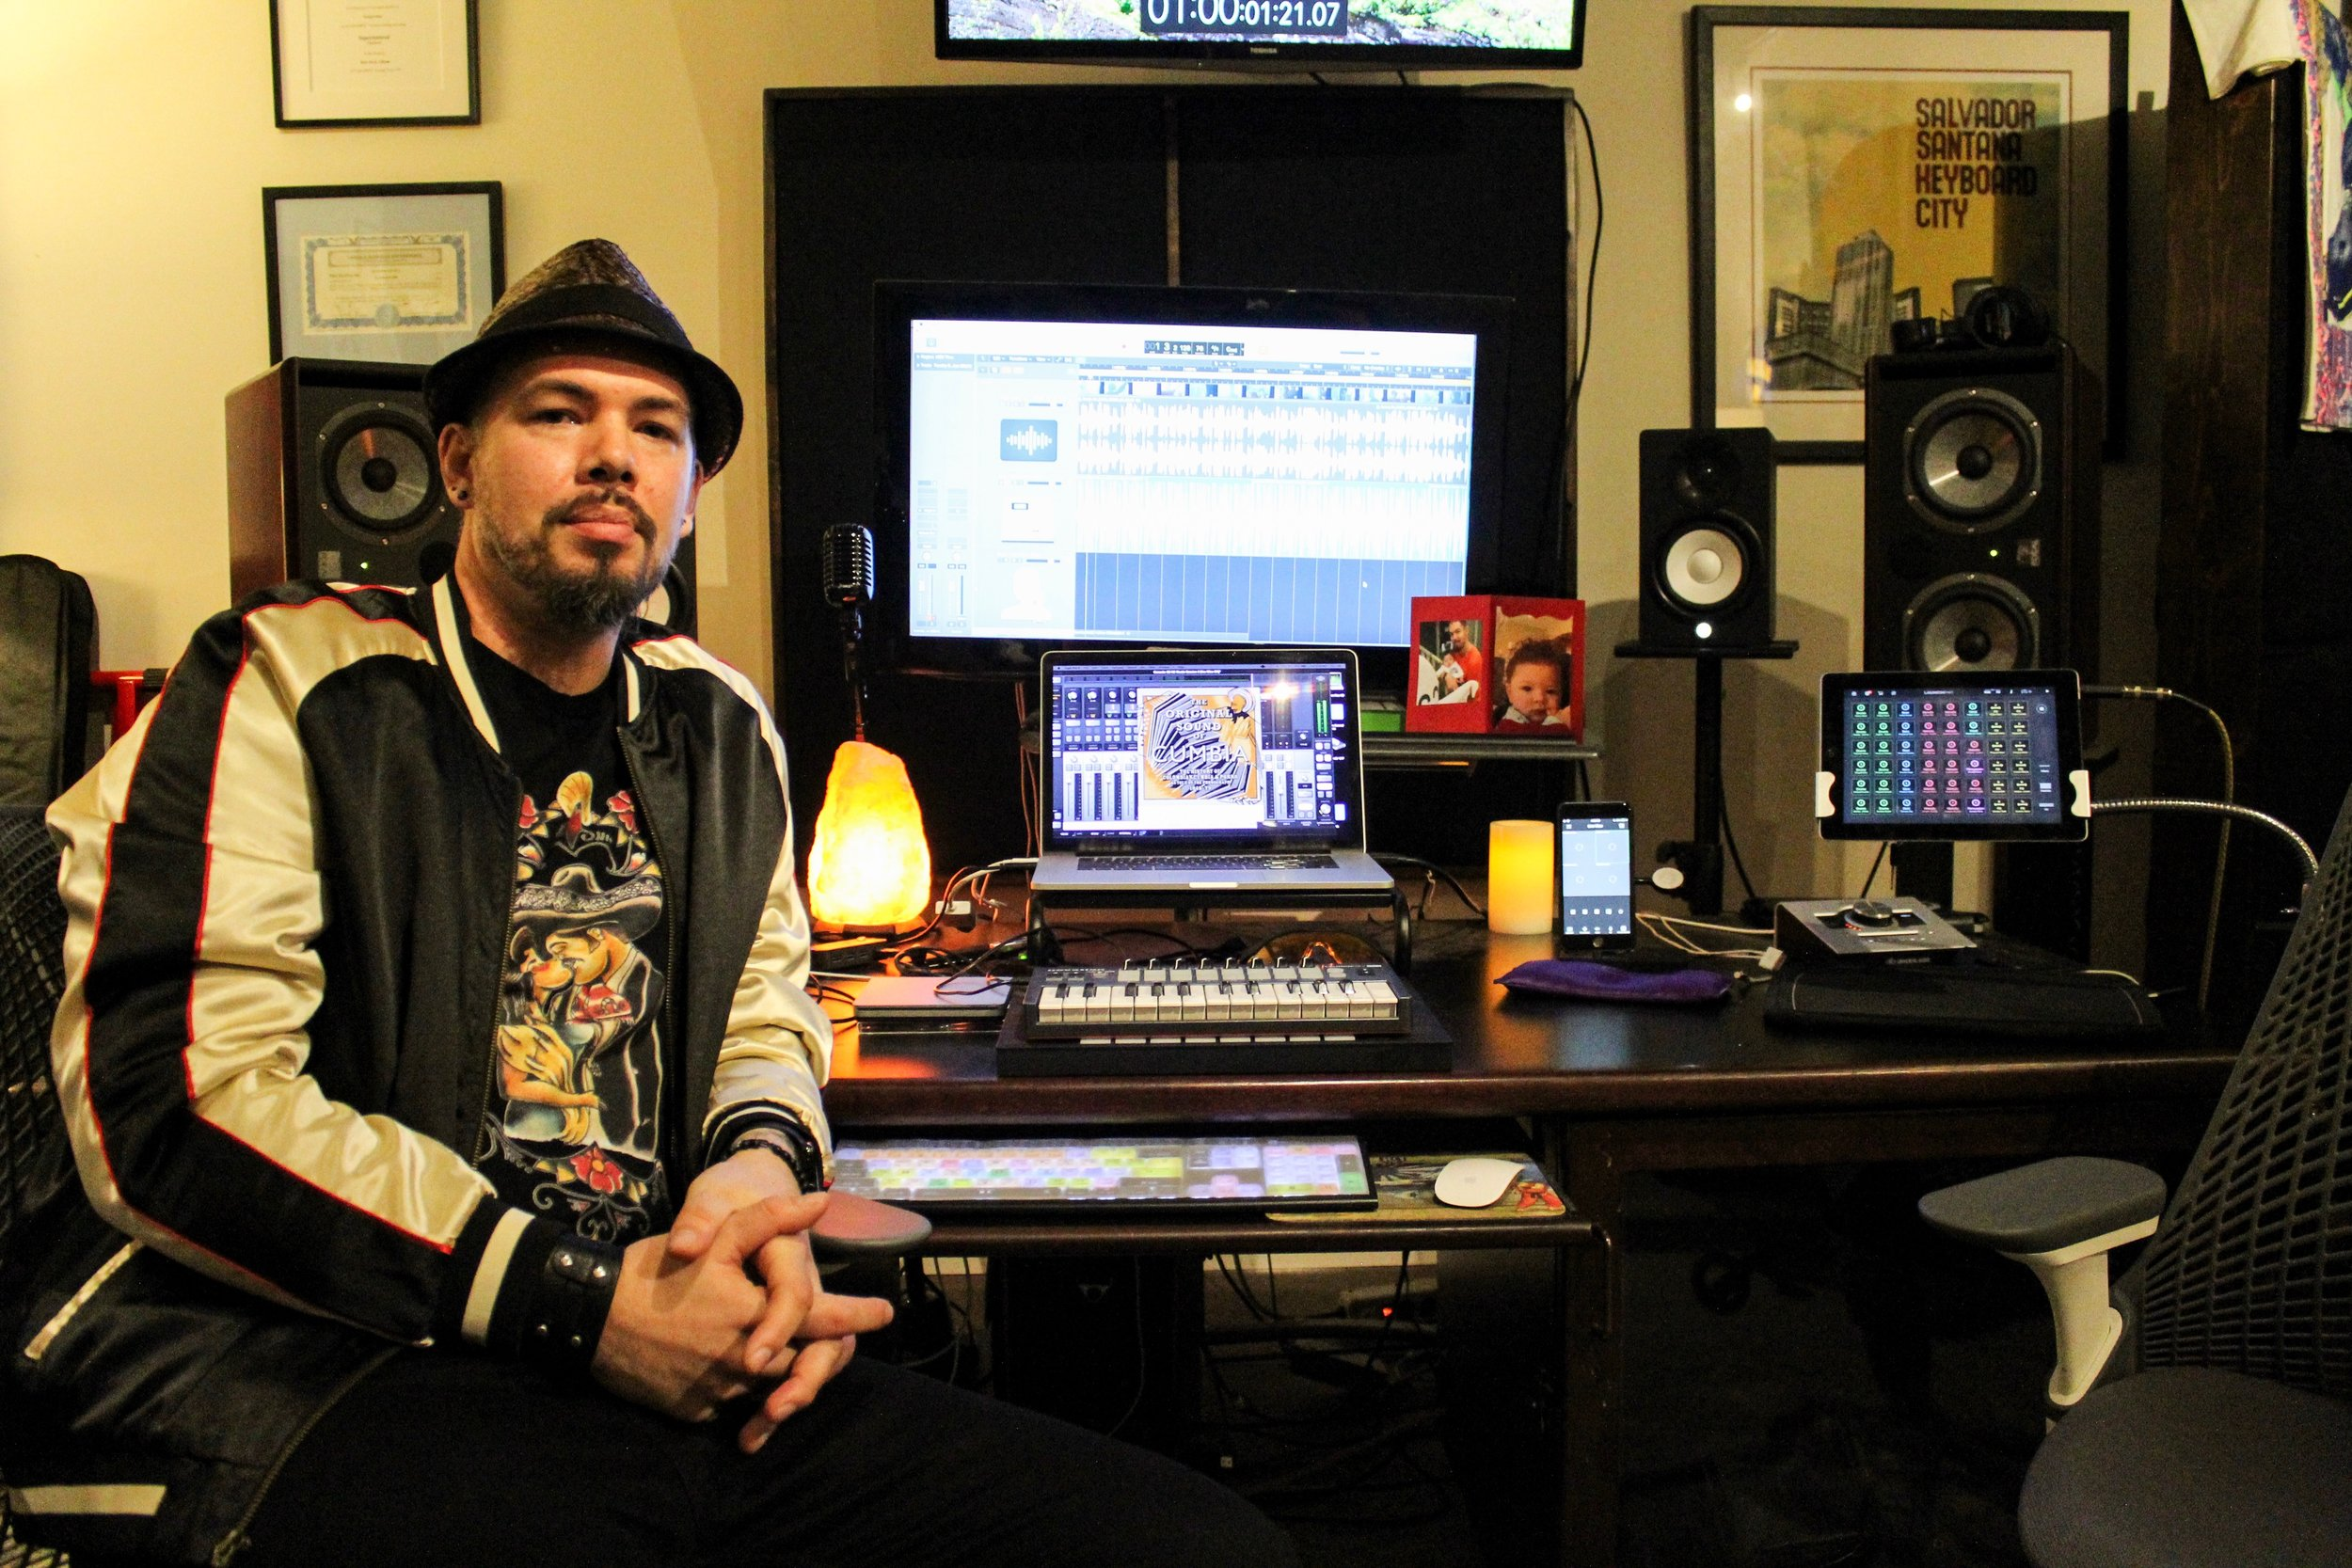 Salvador Santana in his home studio by Roger Martinez